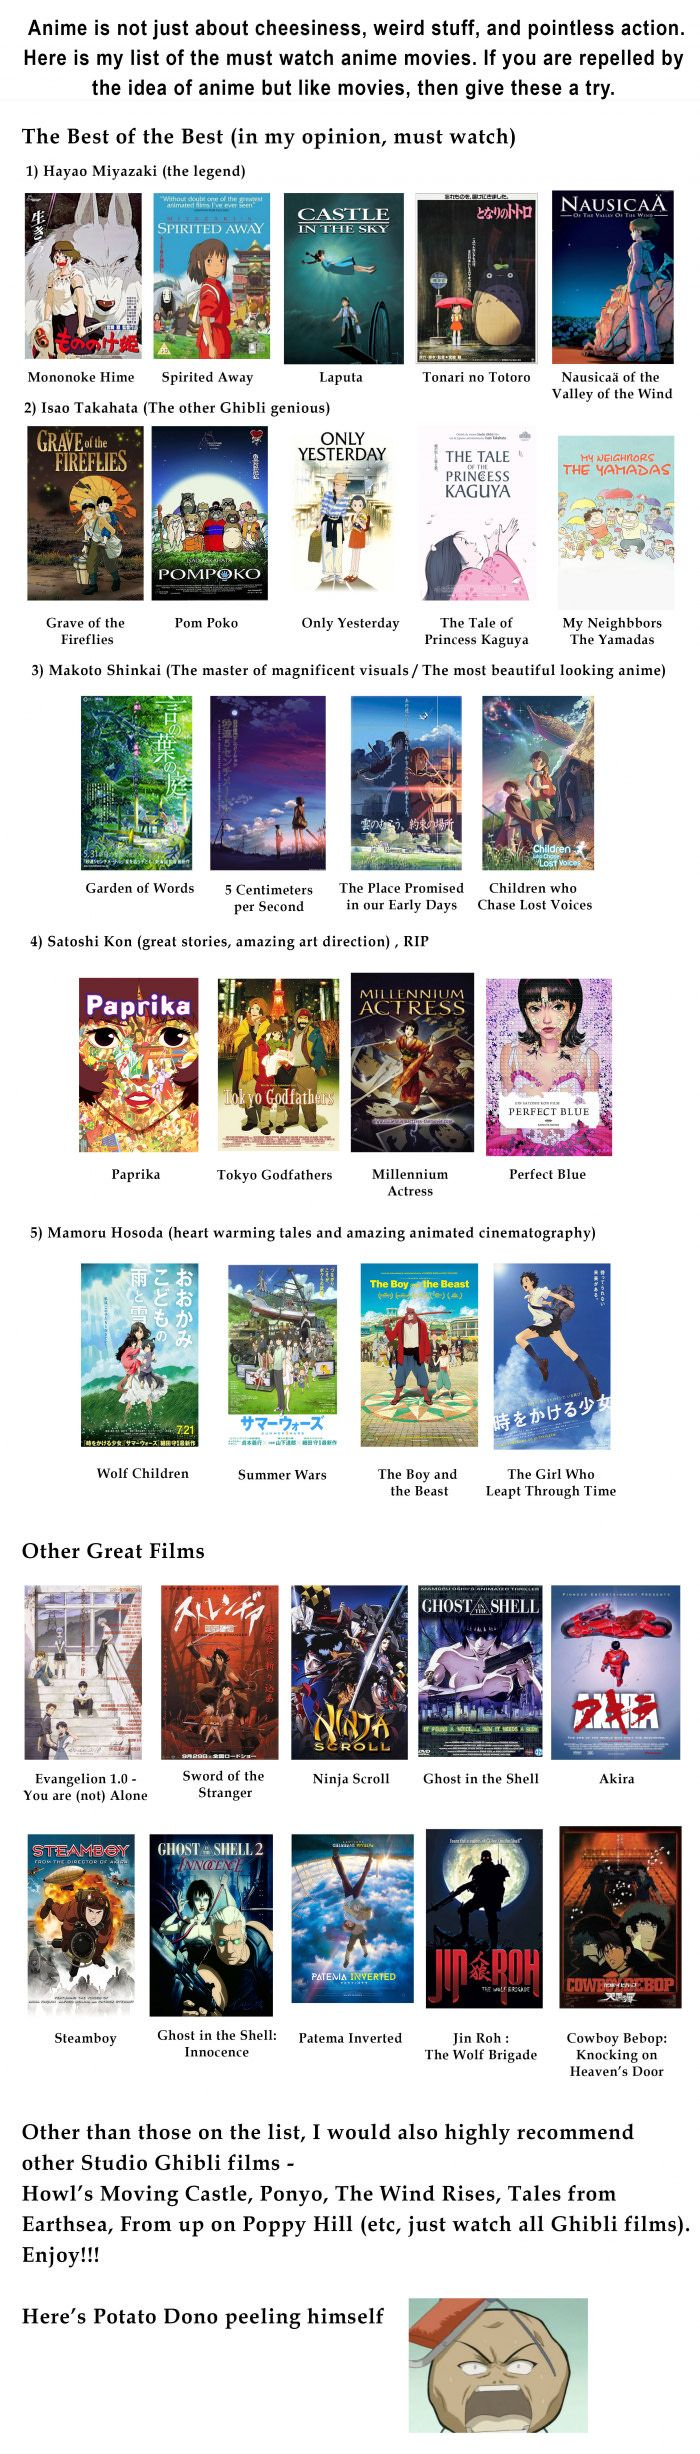 If you like movies and are open to animated ones, then I highly recommend these anime movies. (preferably watch in Japanese with subs) - 9GAG